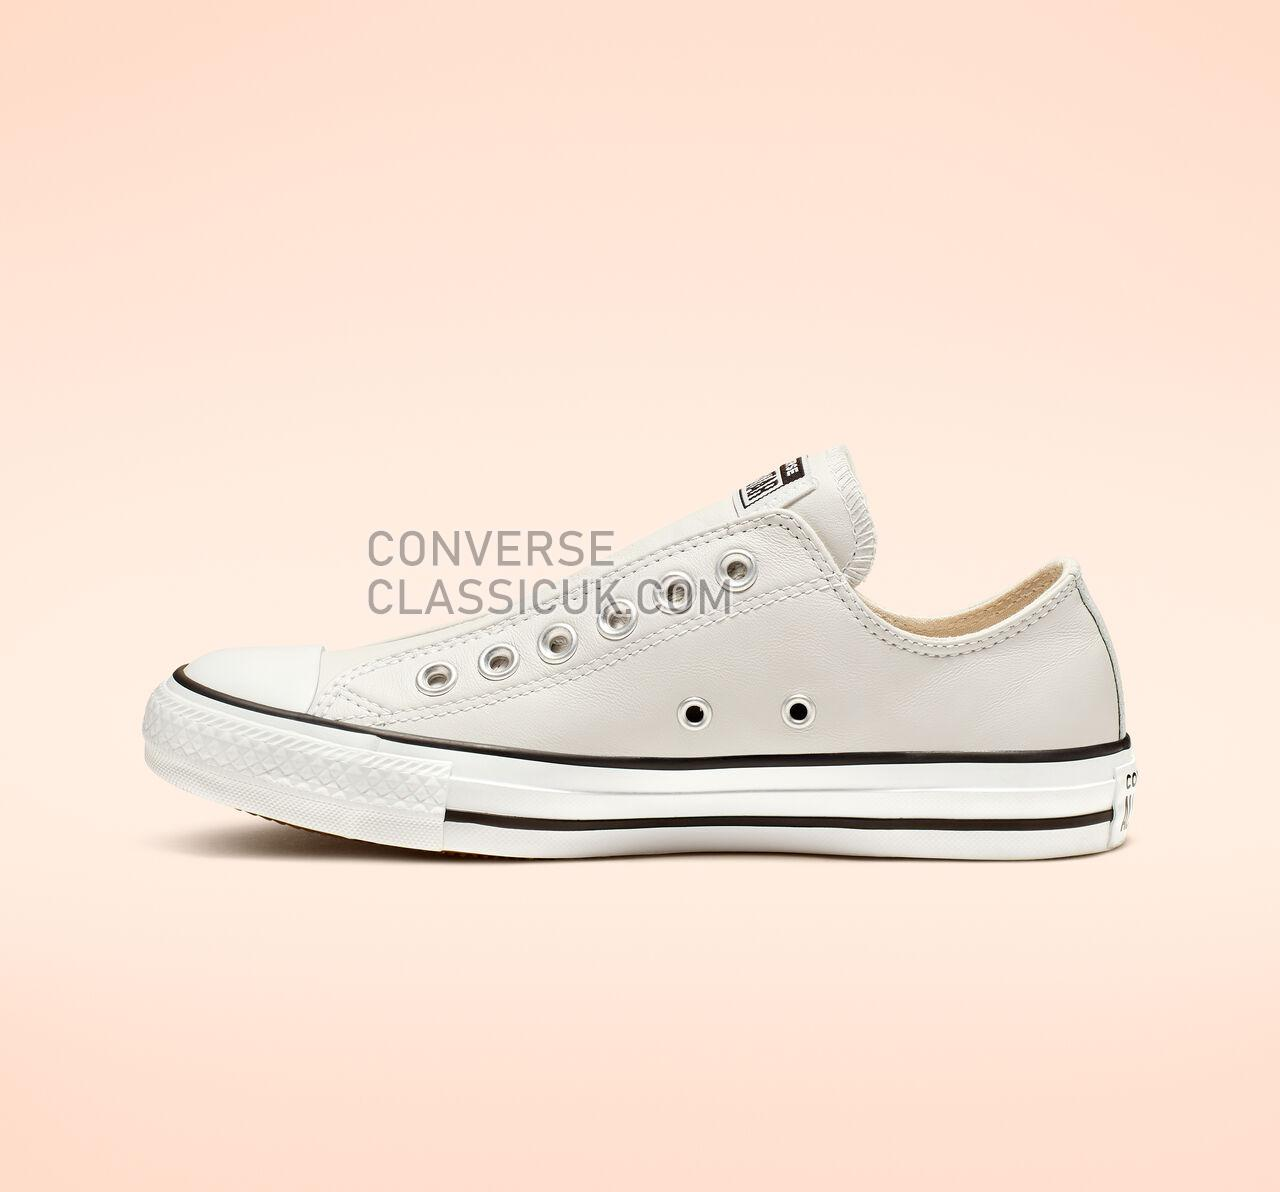 Converse Chuck Taylor All Star Leather Slip Mens Womens Unisex 164977C Mouse/White/Black Shoes